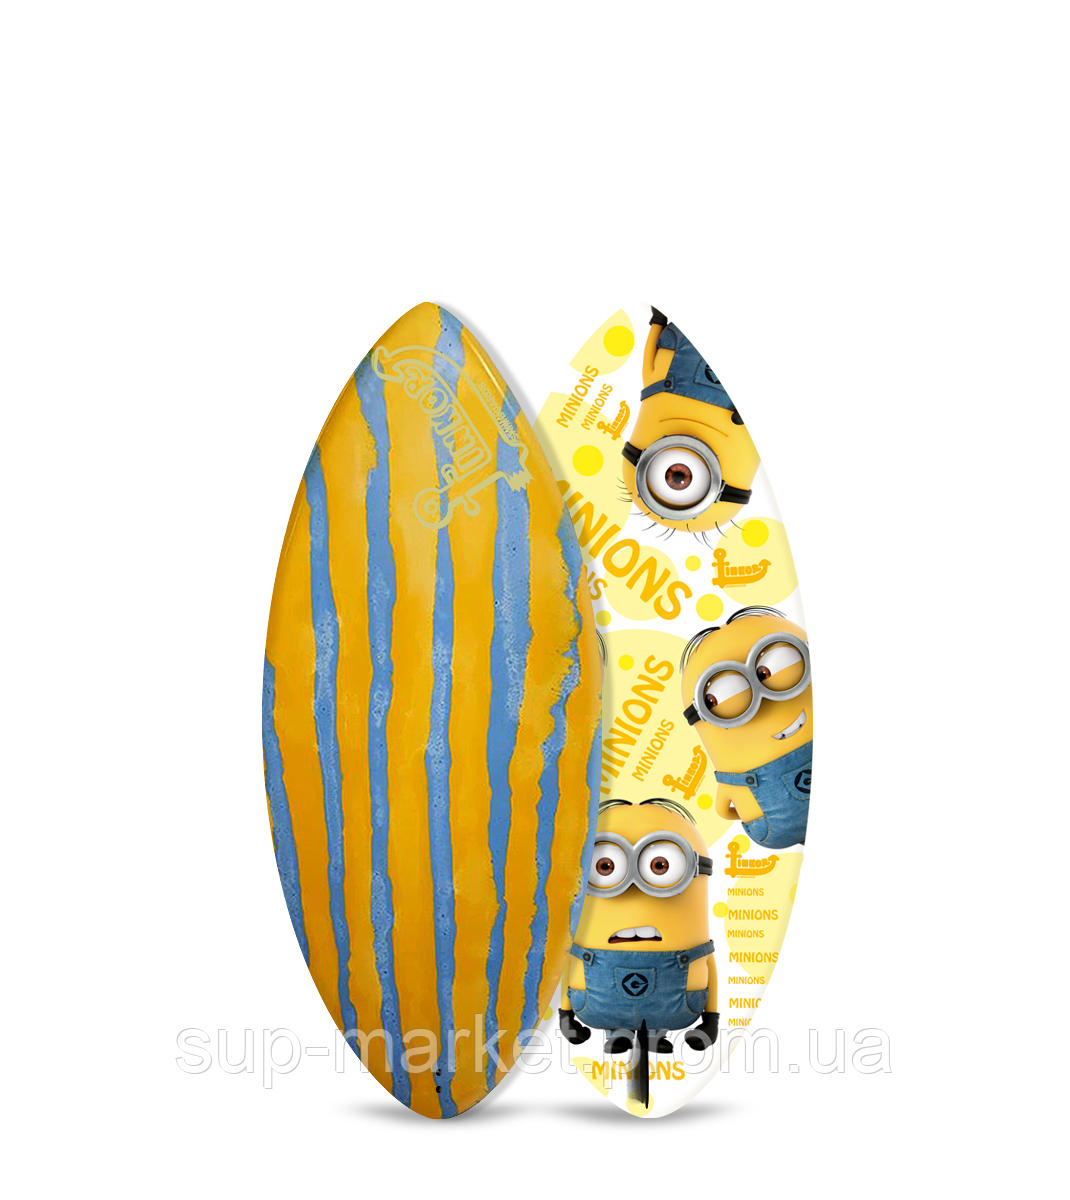 Вейксёрф детский Linkor Skimboards Monstro E-Glass Kids, XS/45